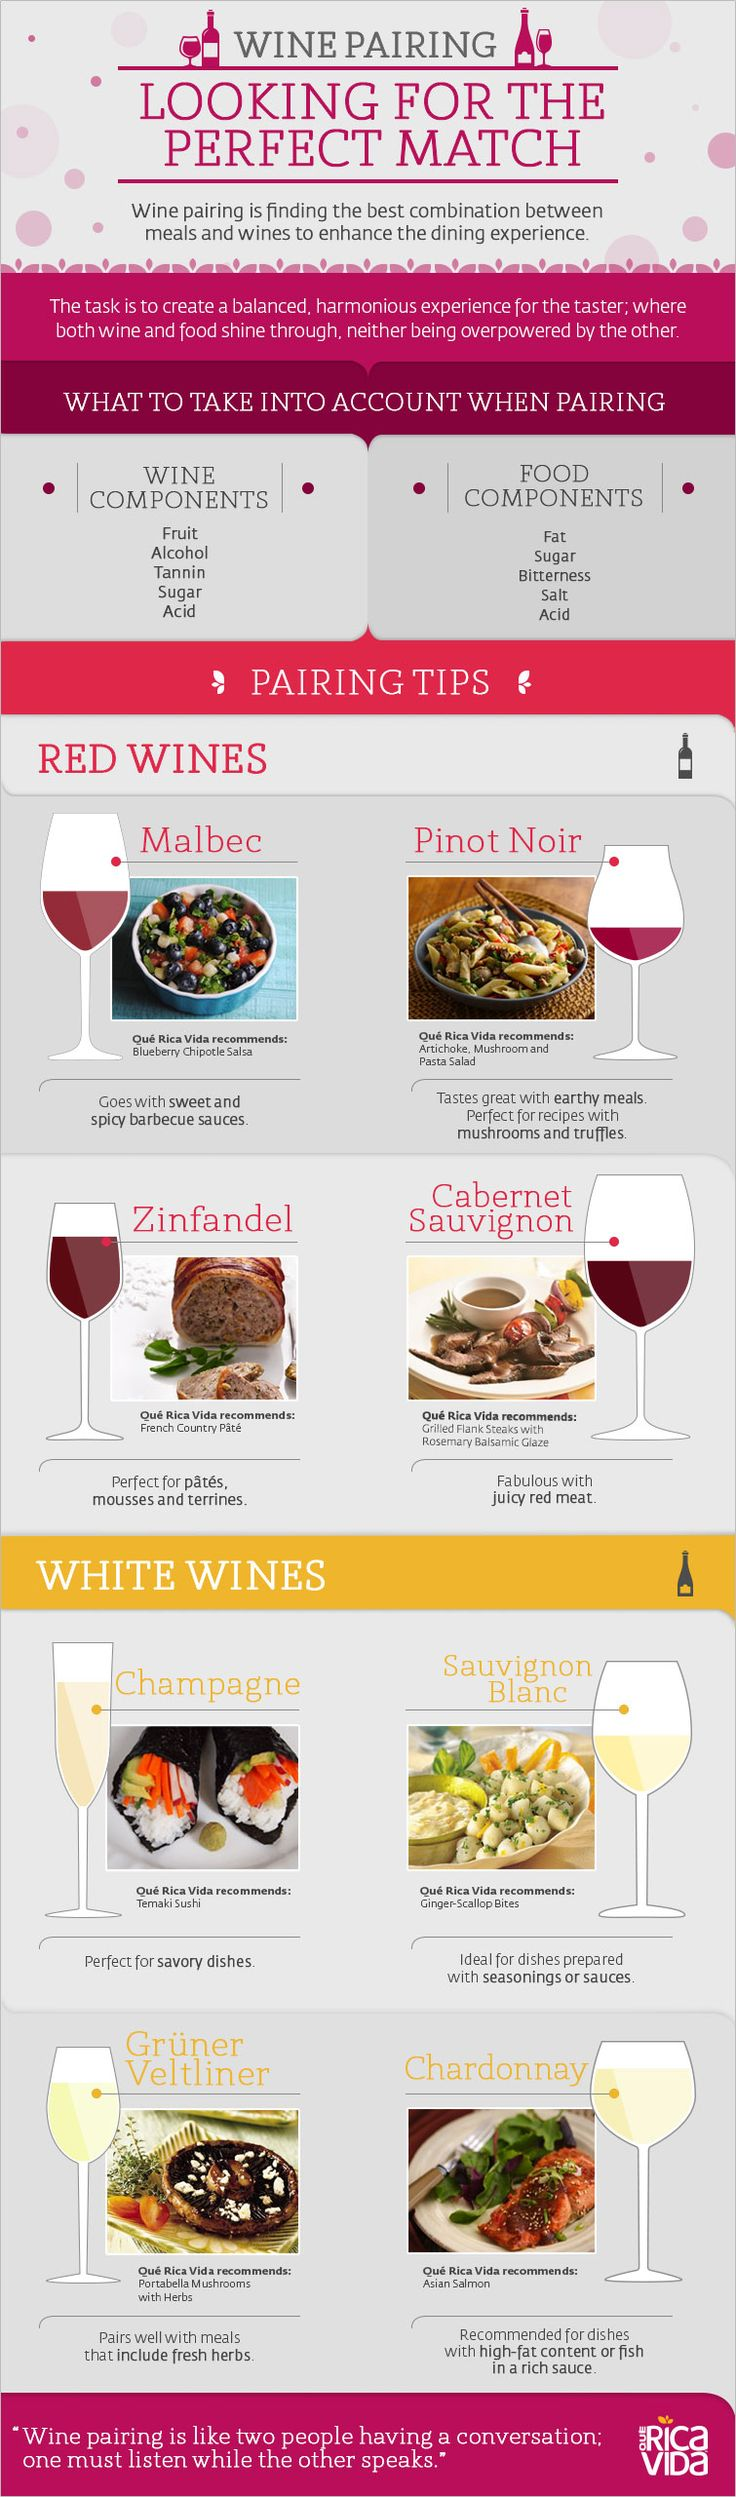 Wine Pairing Tips Infographic